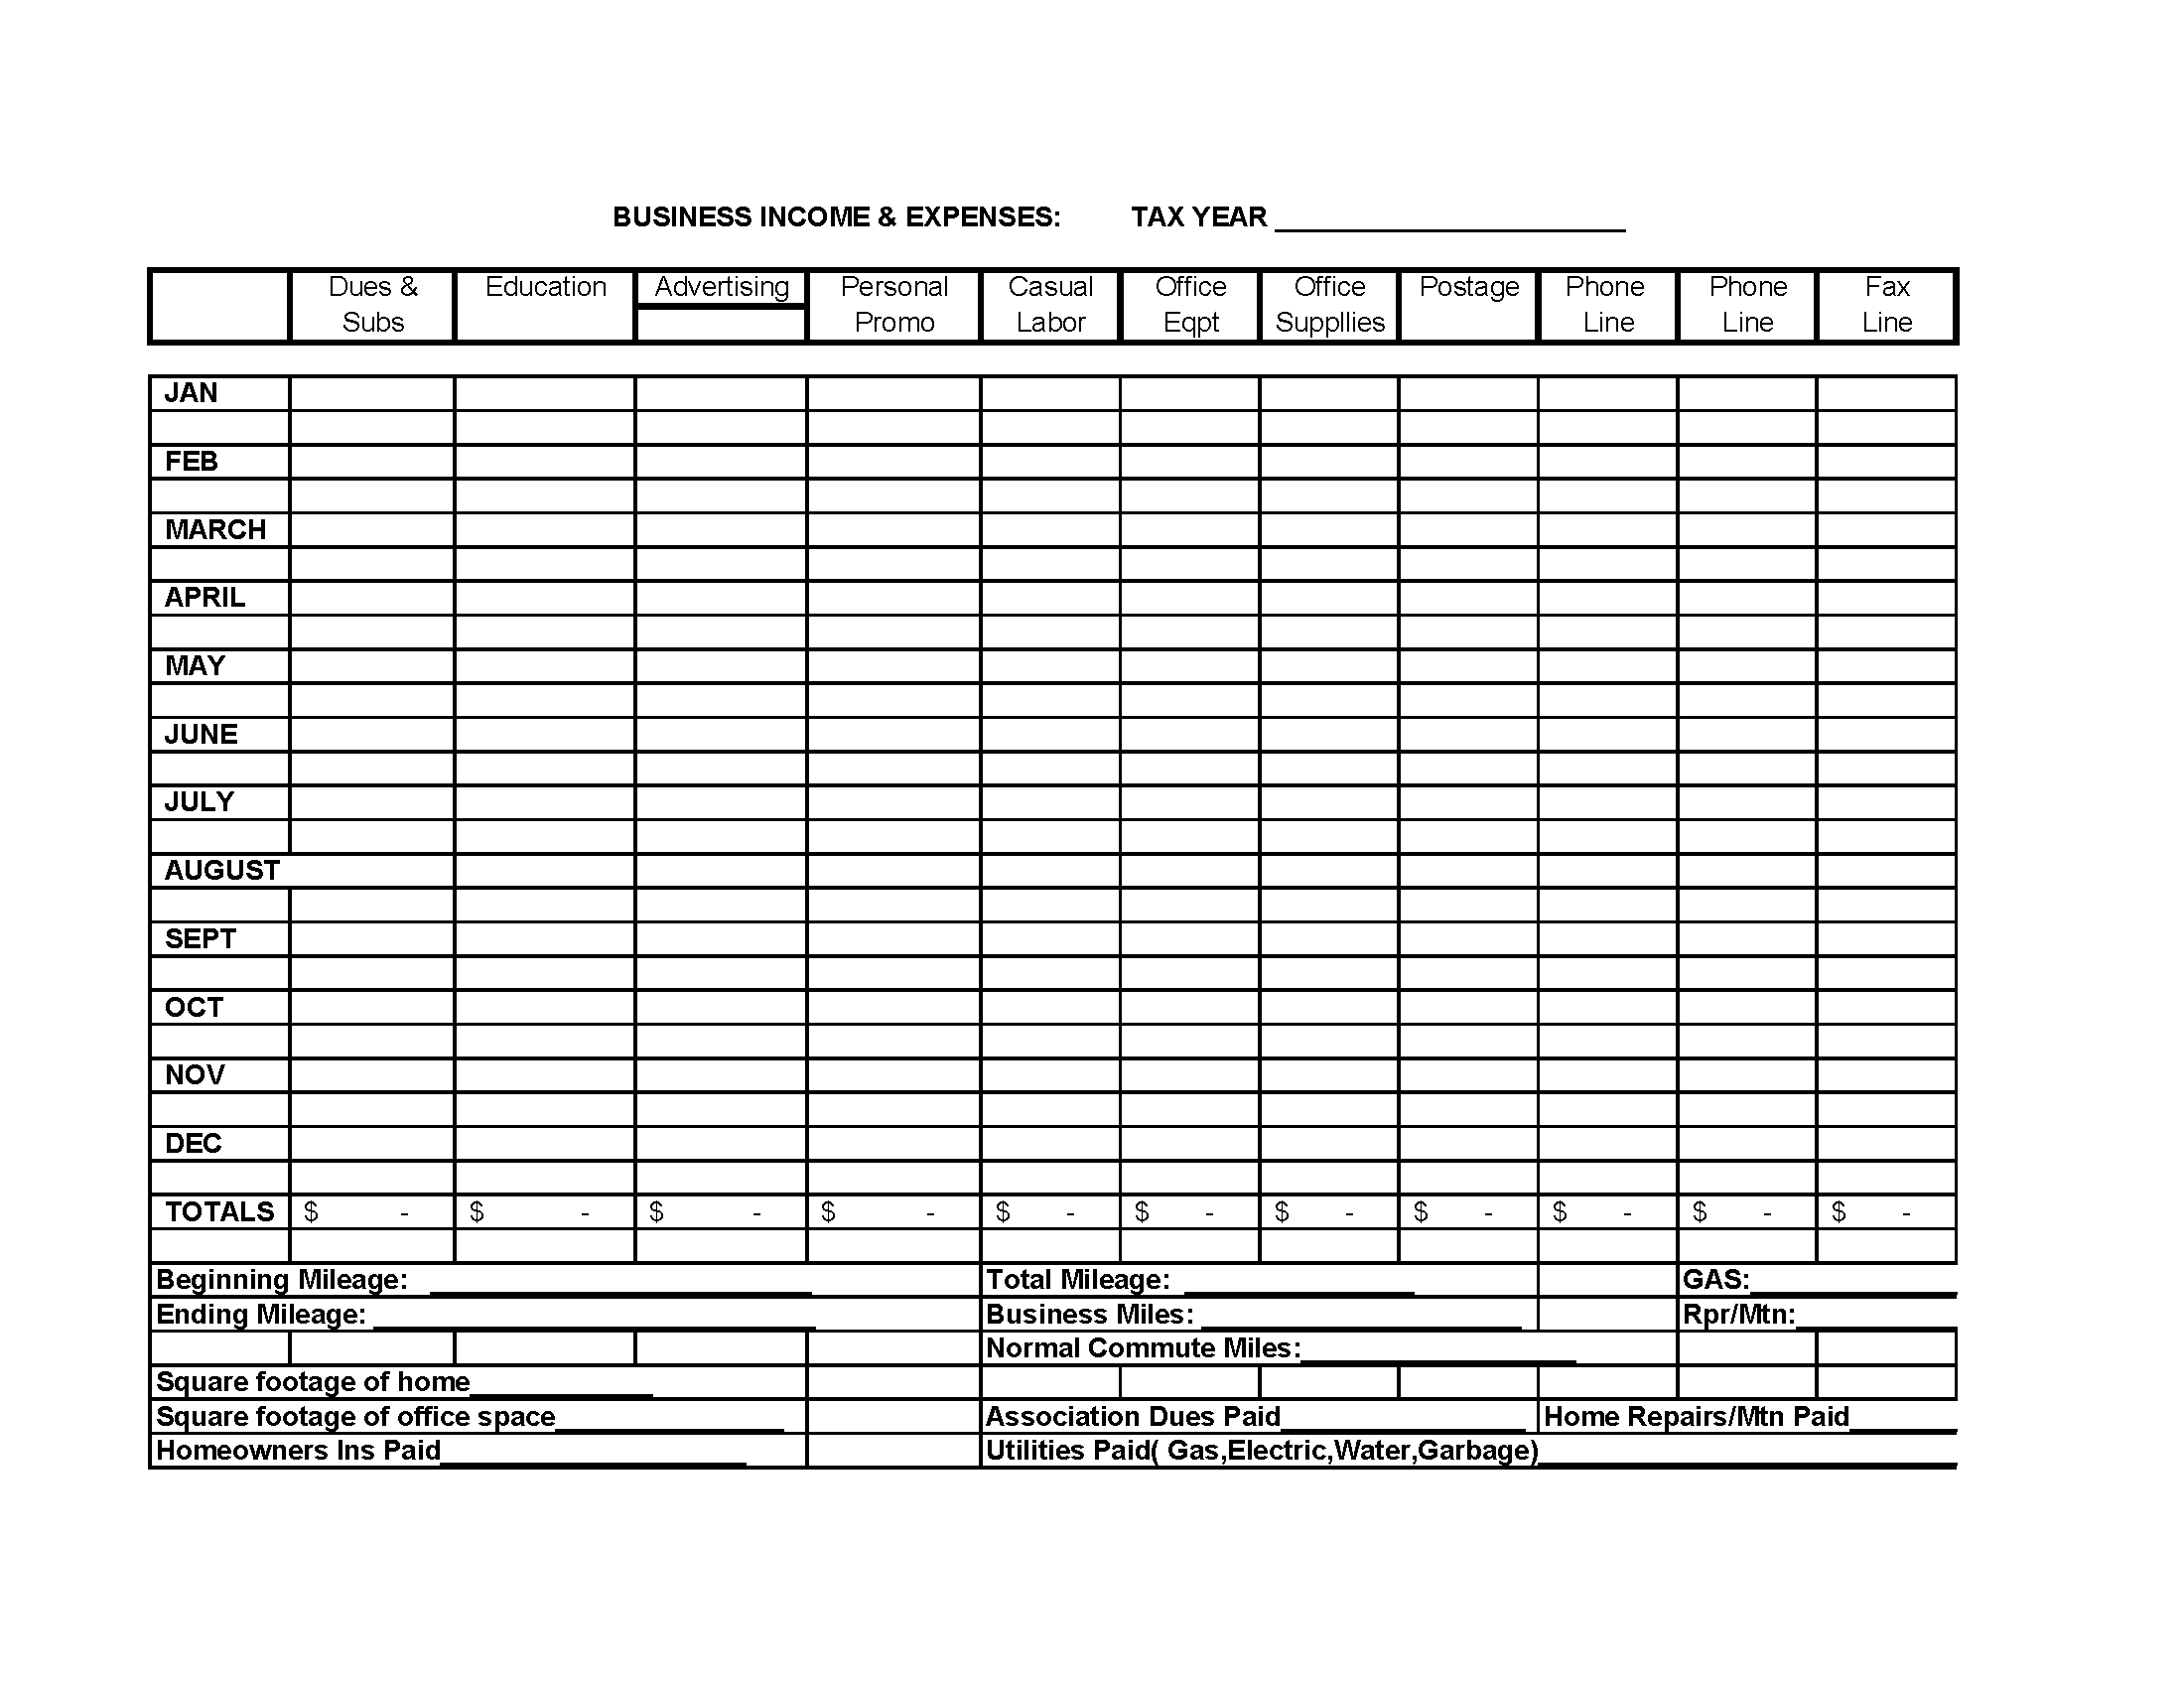 Worksheets Expense Worksheet business income expense spreadsheet template template